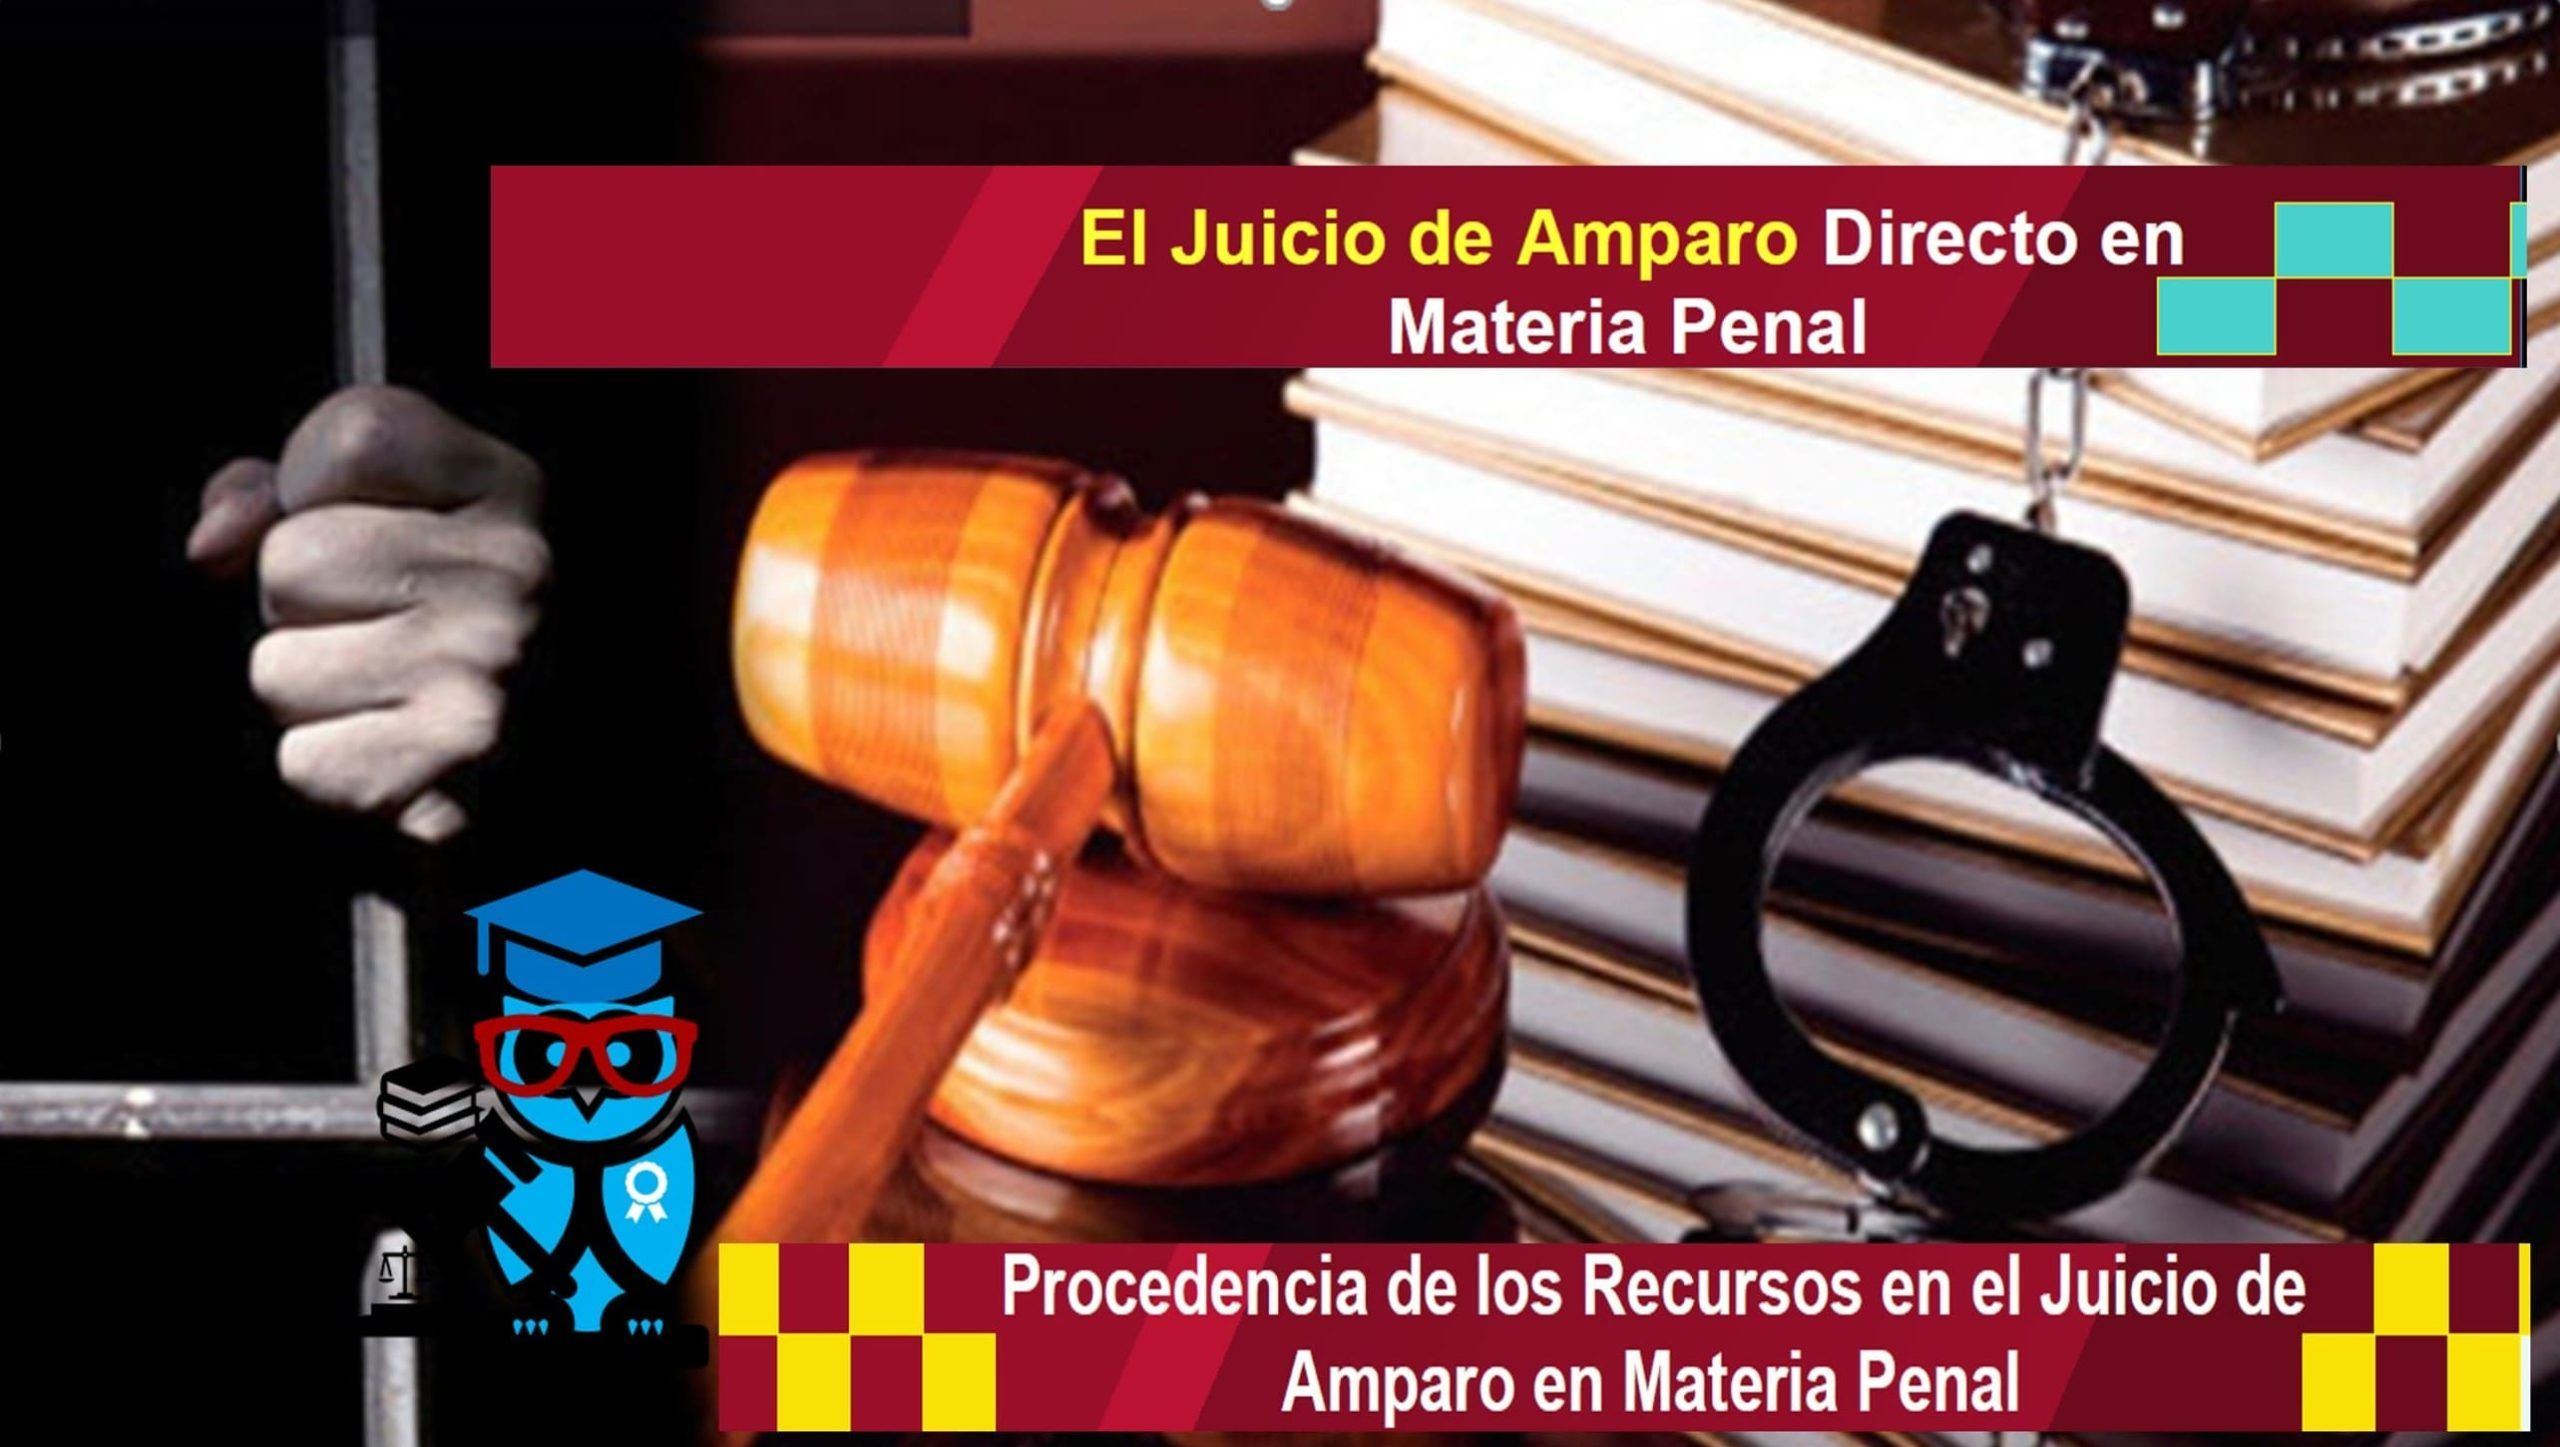 Photo of Juicio de Amparo Directo en Materia Penal